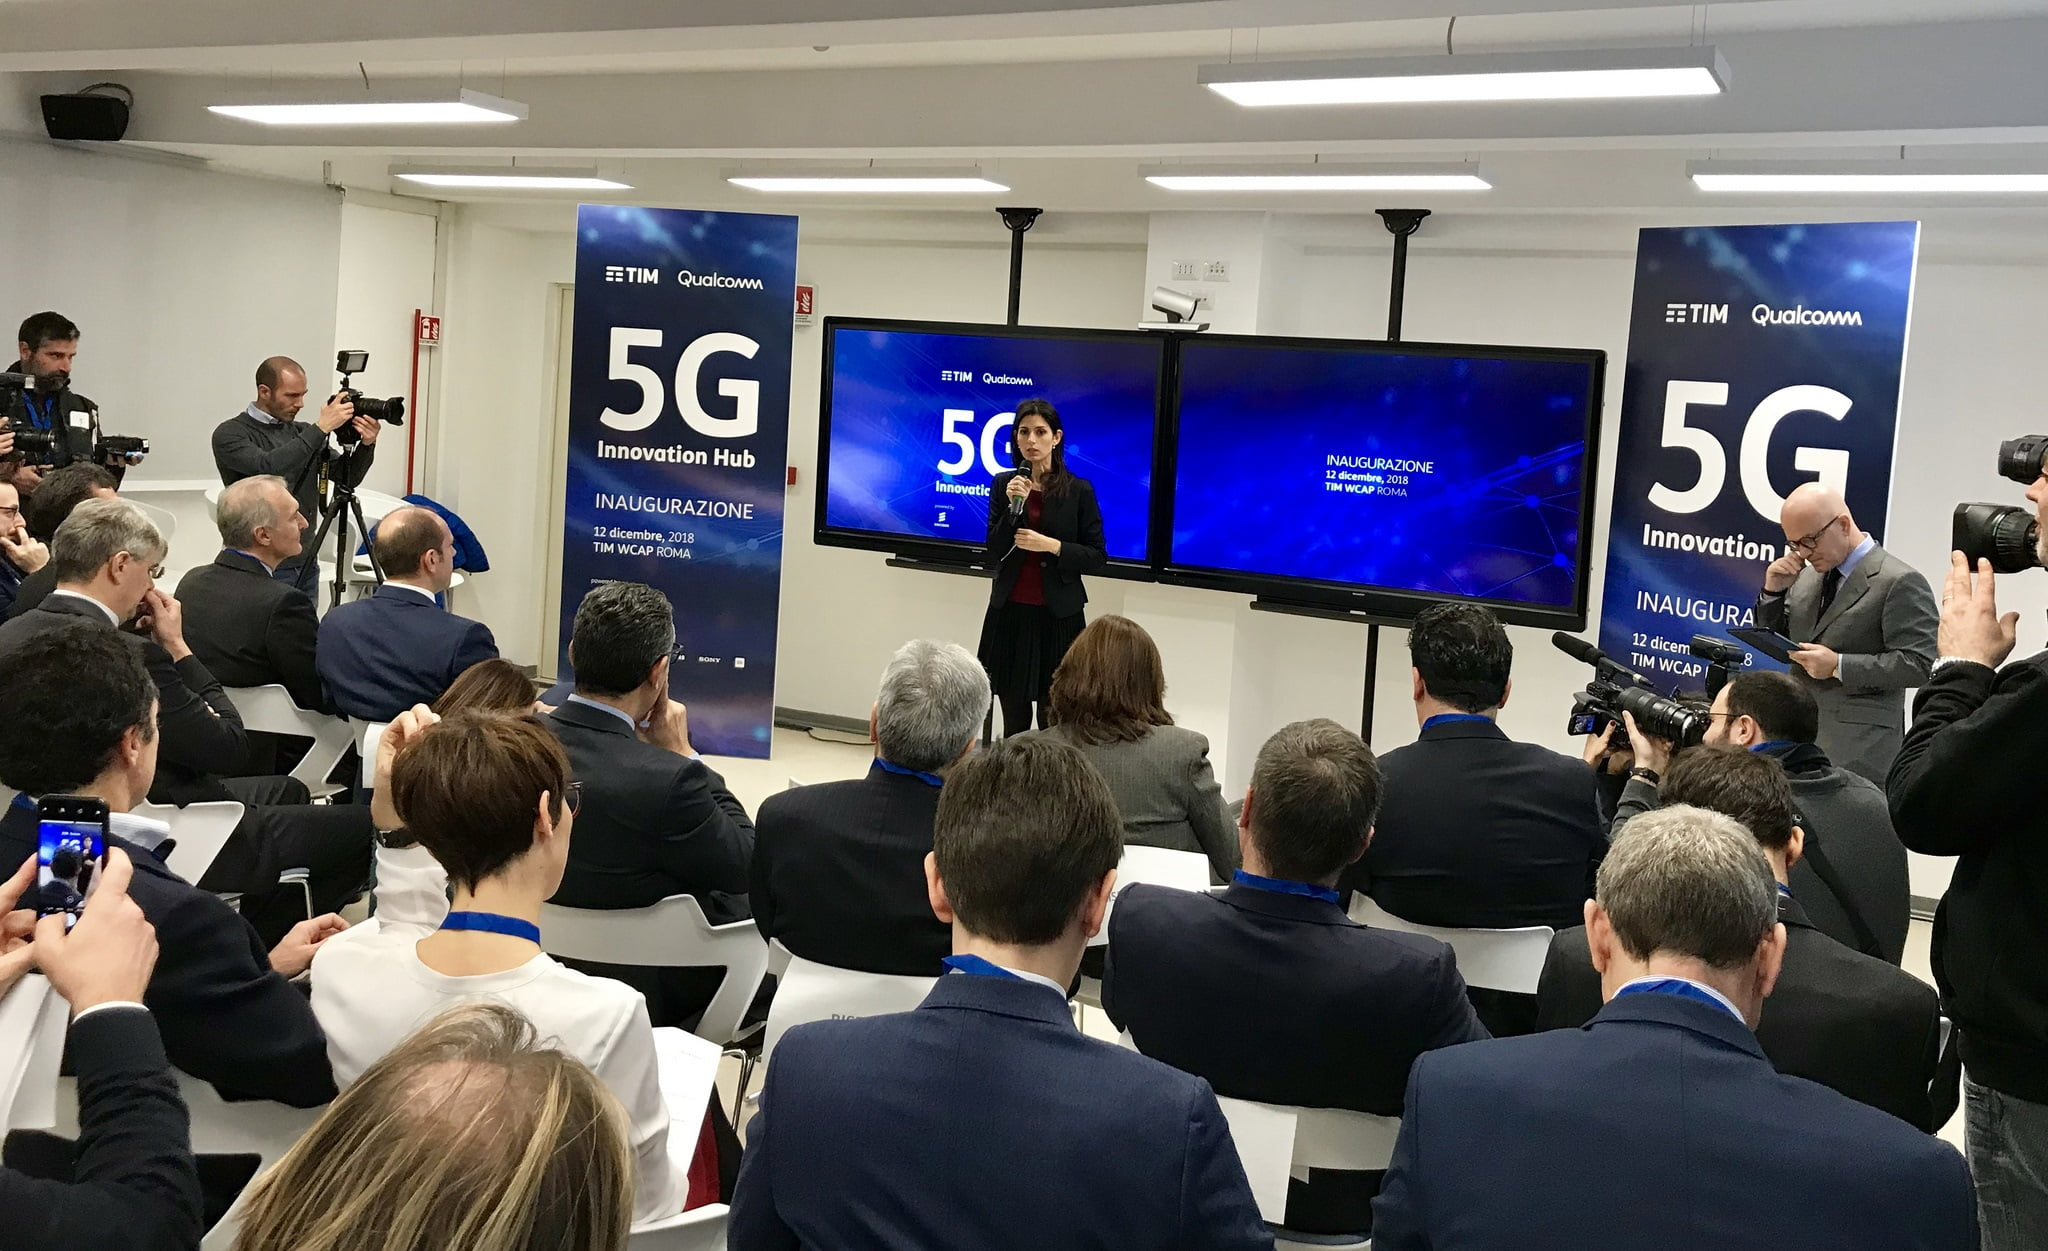 TIM e Qualcomm presentano lo streaming multi-view 5G thumbnail